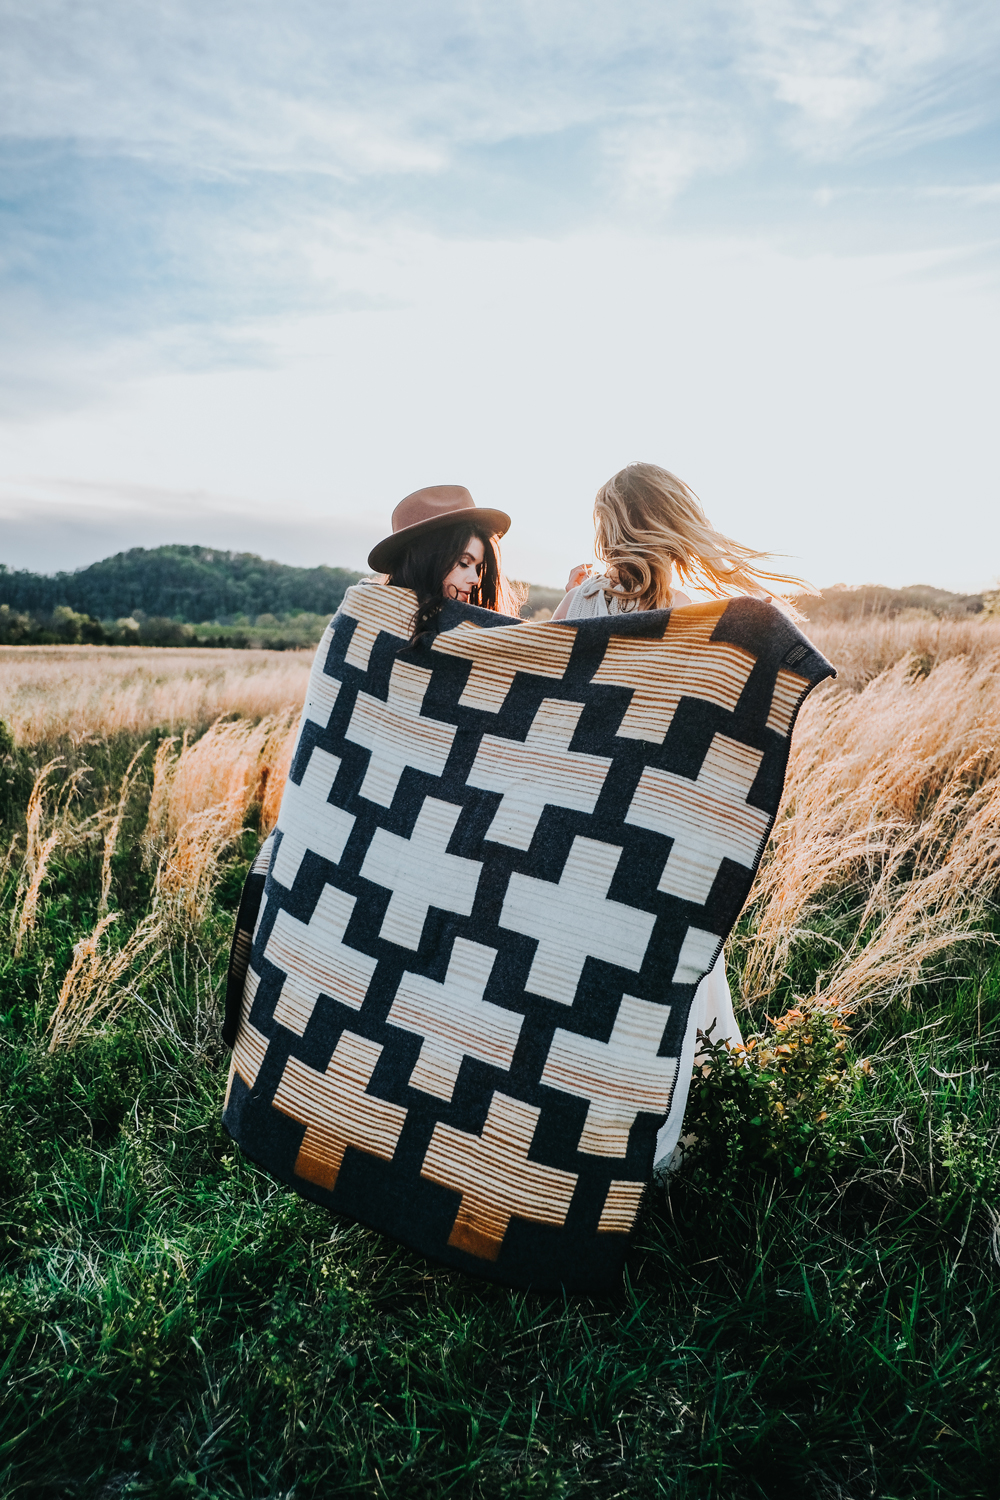 Two women wrap up in a blanket in a meadow.